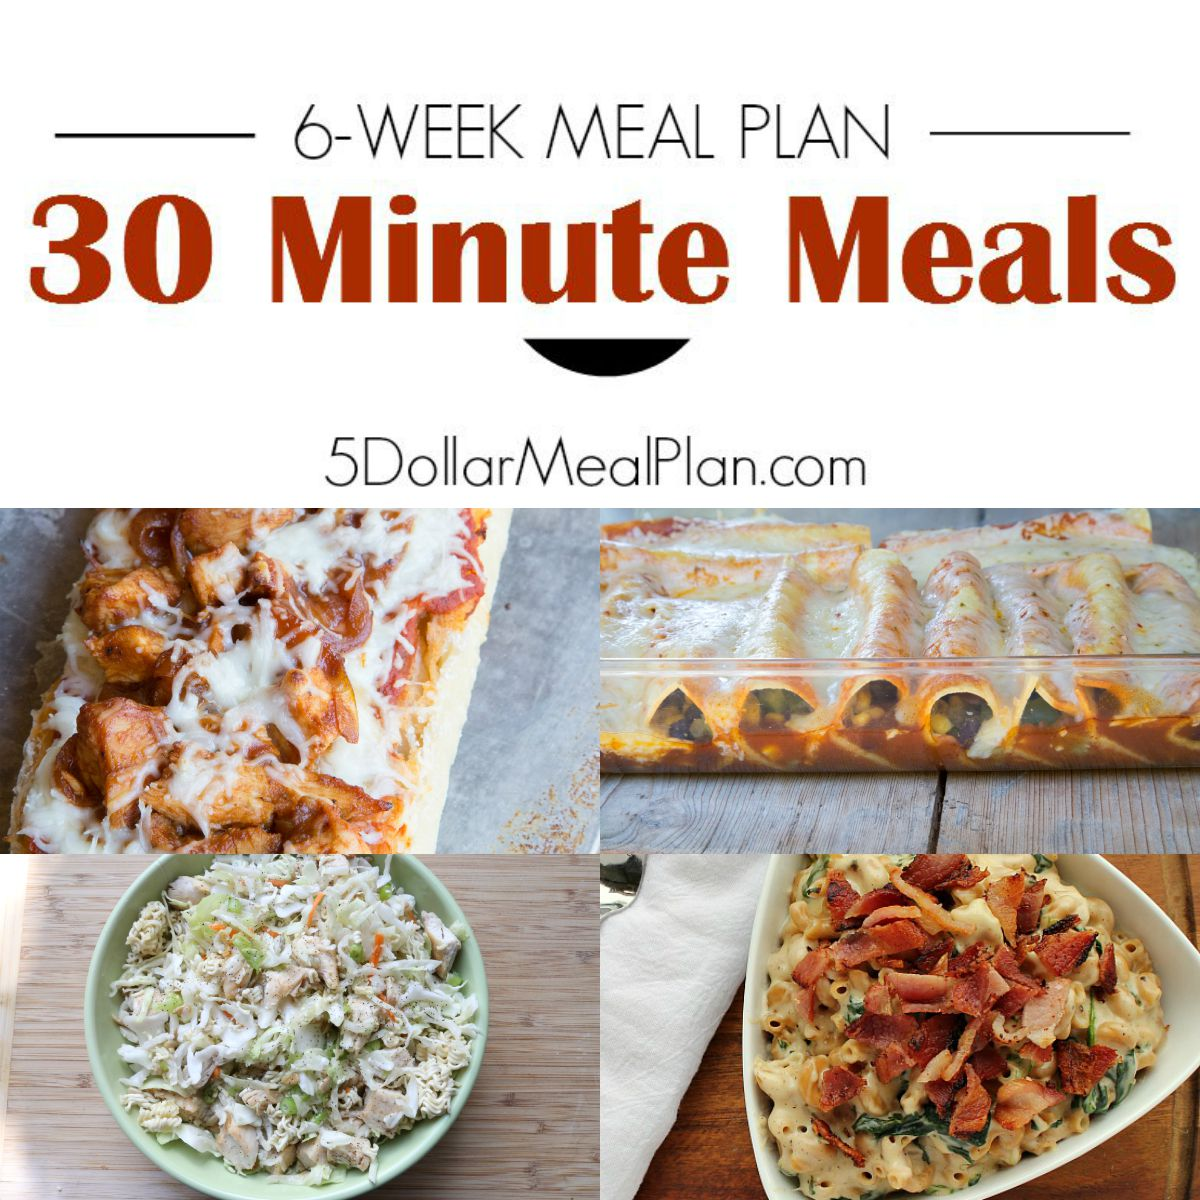 6 Week Meal Plan Featuring ALL 30 Minute Meals from 5DollarDinners.com